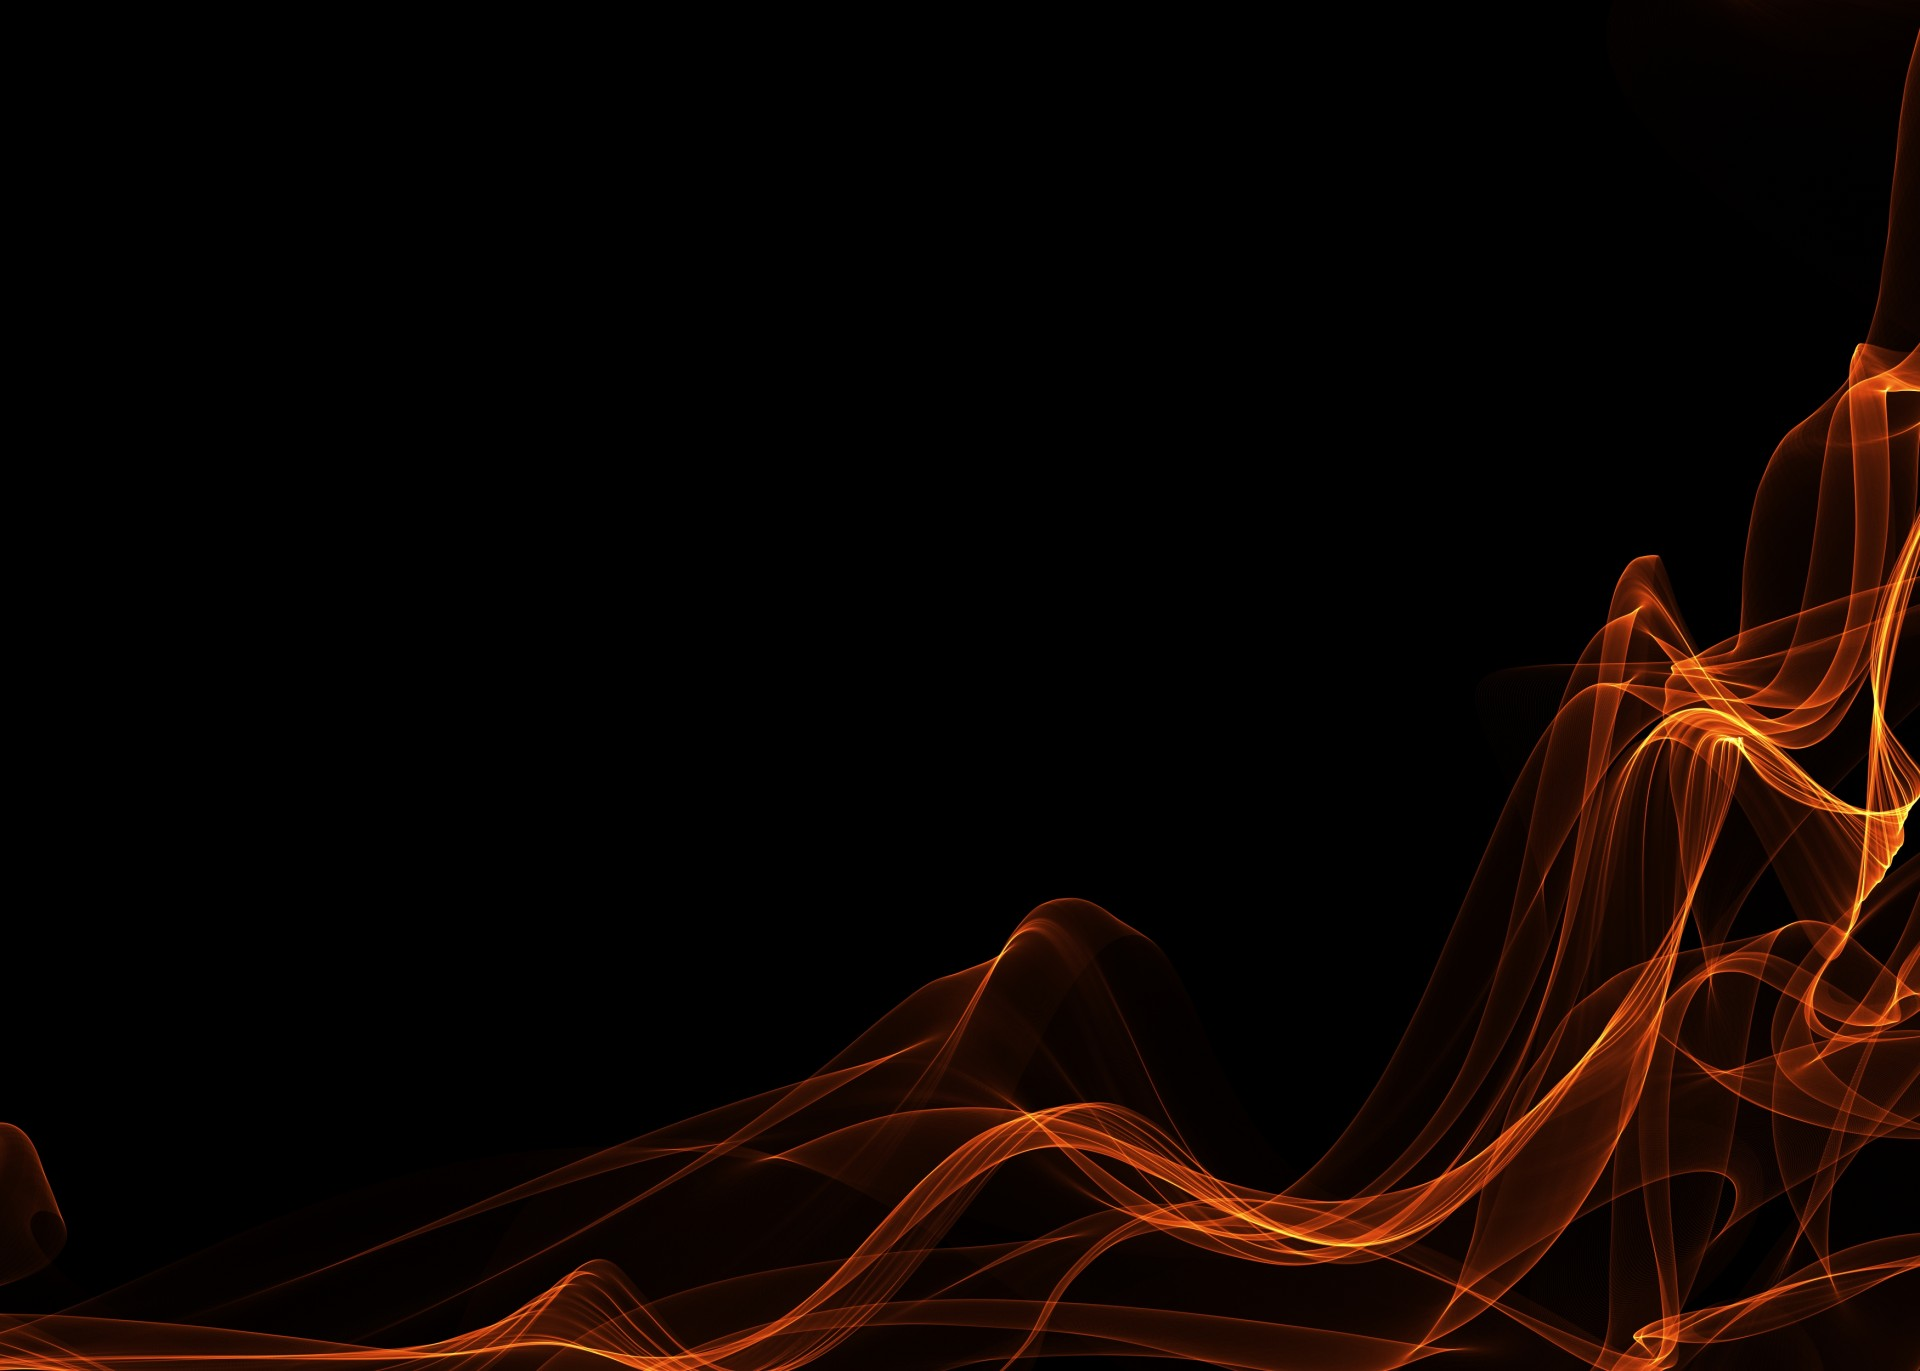 Flame Background Powerpoint